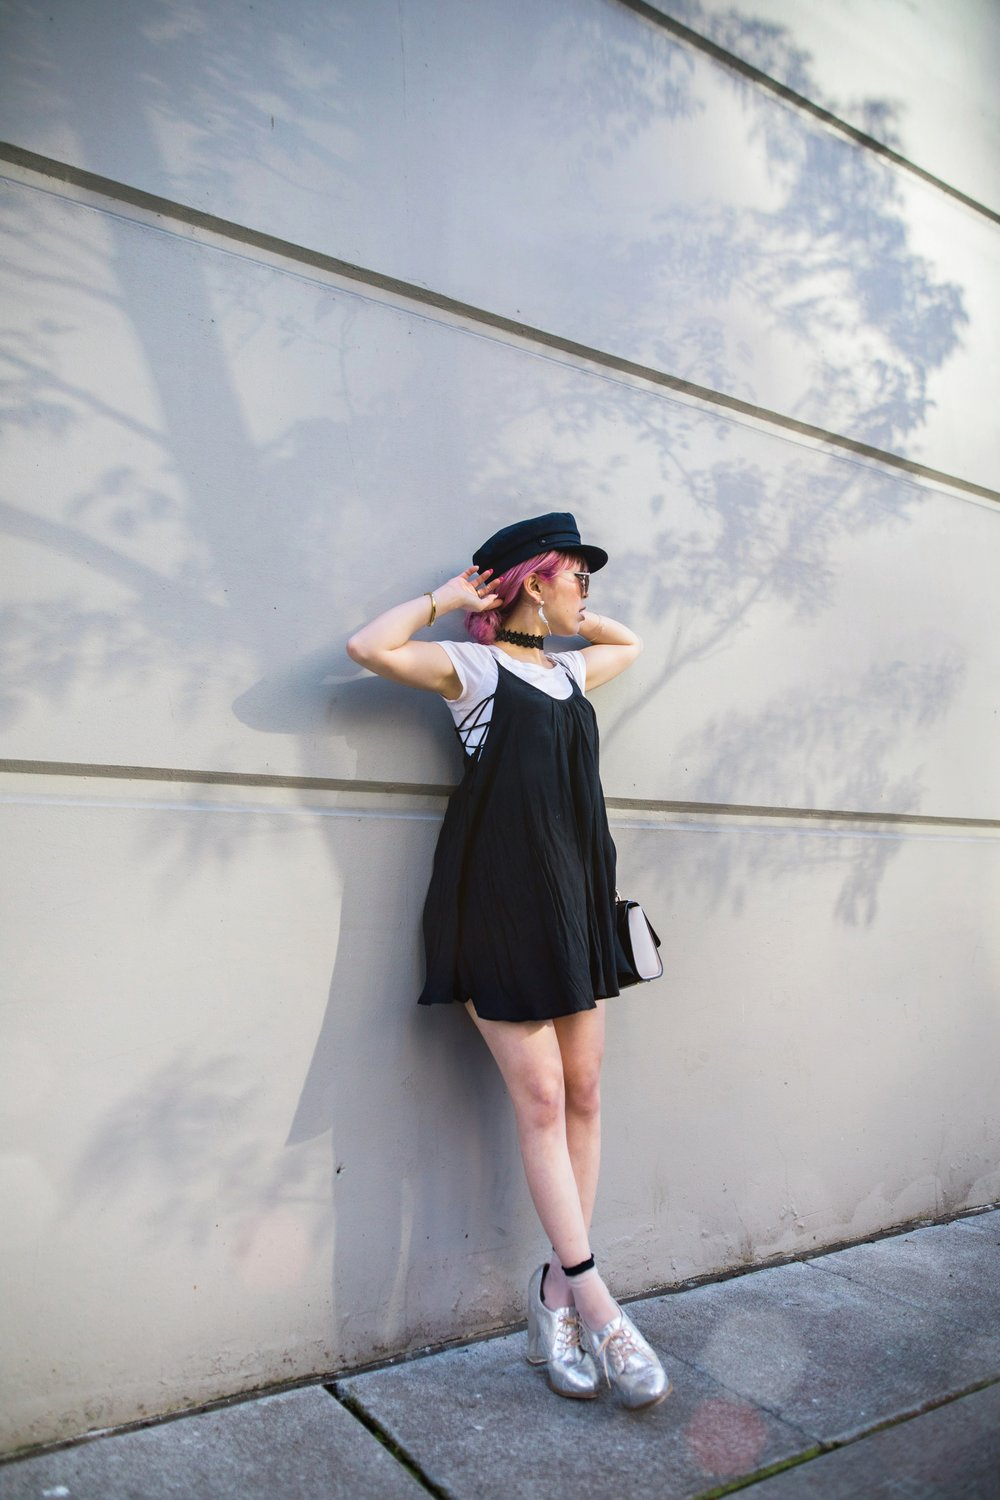 Aritzia News Boy Cap_Polette Retro Round Sunglasses_Mango Moon Star Earrings_Shopdixi Lace Choker_Forever 21 White Tee_Urban Outfitters Little Black Dress_Zara Bag_Sheer ankle Socks_ASOS Glitter Block heels Shoes_Aikas Love Closet_Seattle Fashion Blogger_Japanese_Pink hair 7